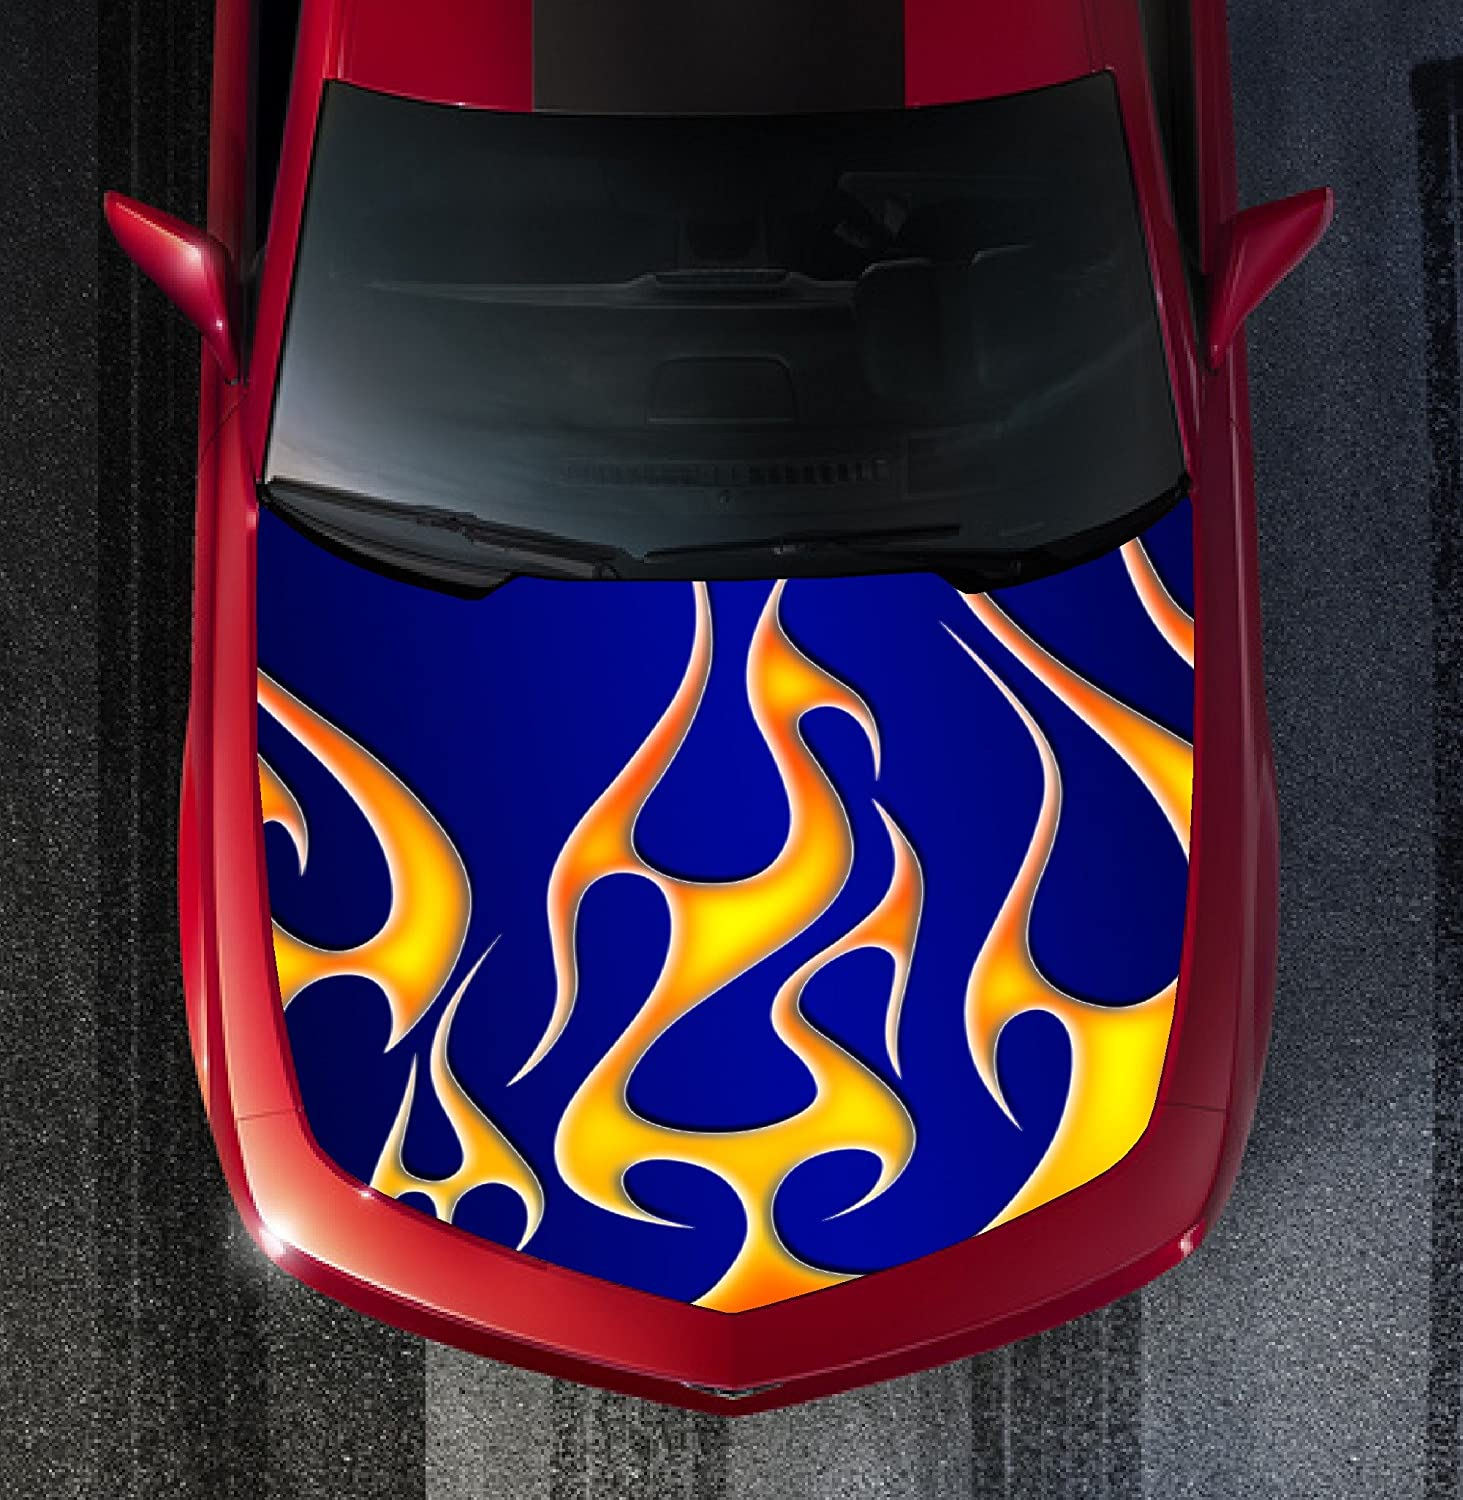 H40 FIRE FLAMES TRIBAL Hood Wrap Wraps Decal Sticker Tint Vinyl Image Graphic